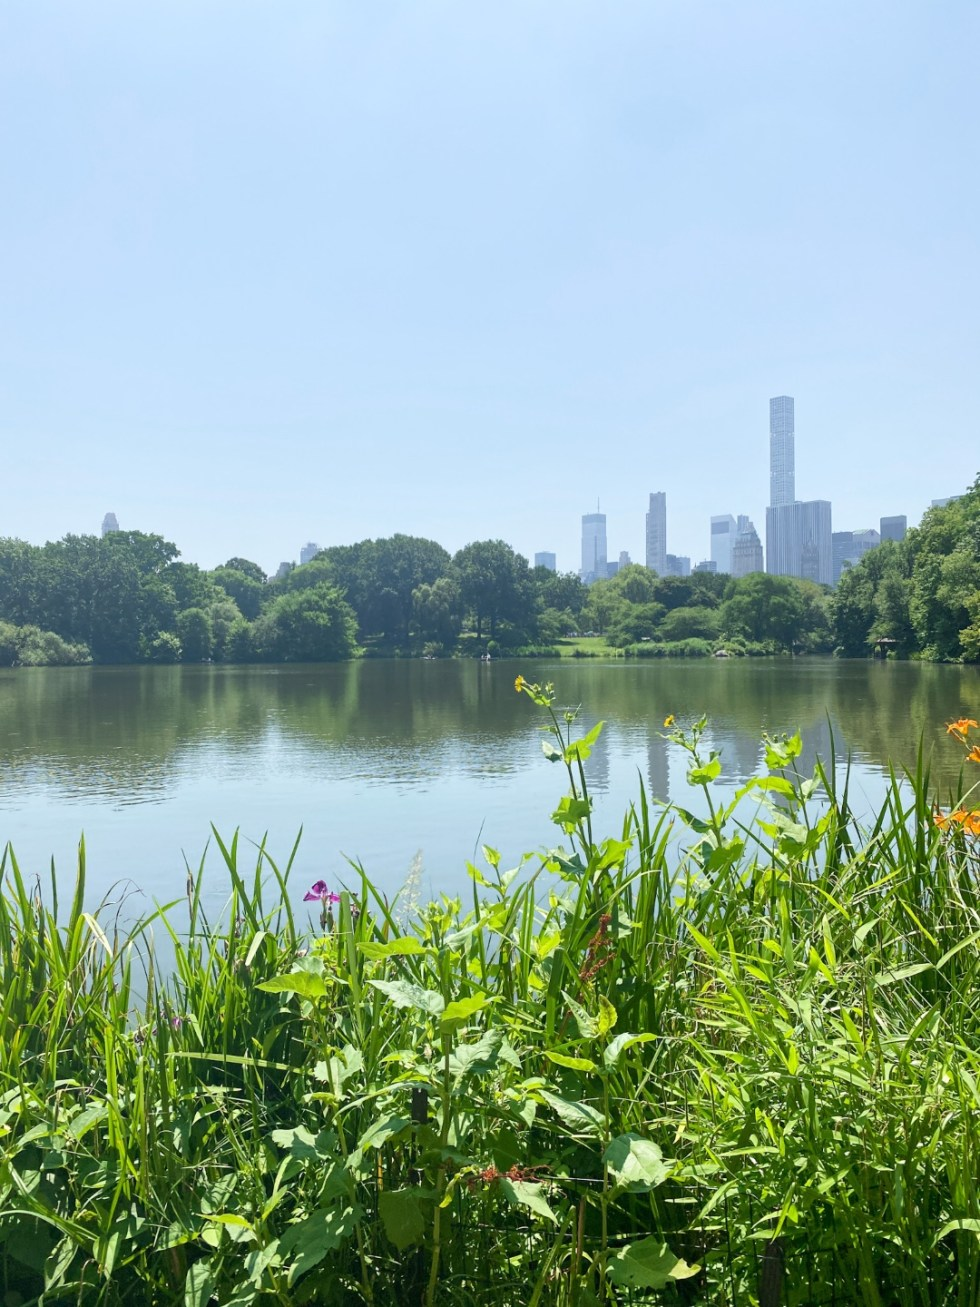 NYC Summer Weekend: Things to Do in NYC in the Summer - I'm Fixin' To - @imfixintoblog   NYC Summer Weekend by popular NC travel blog, I'm Fixin' To: image of Central Park.